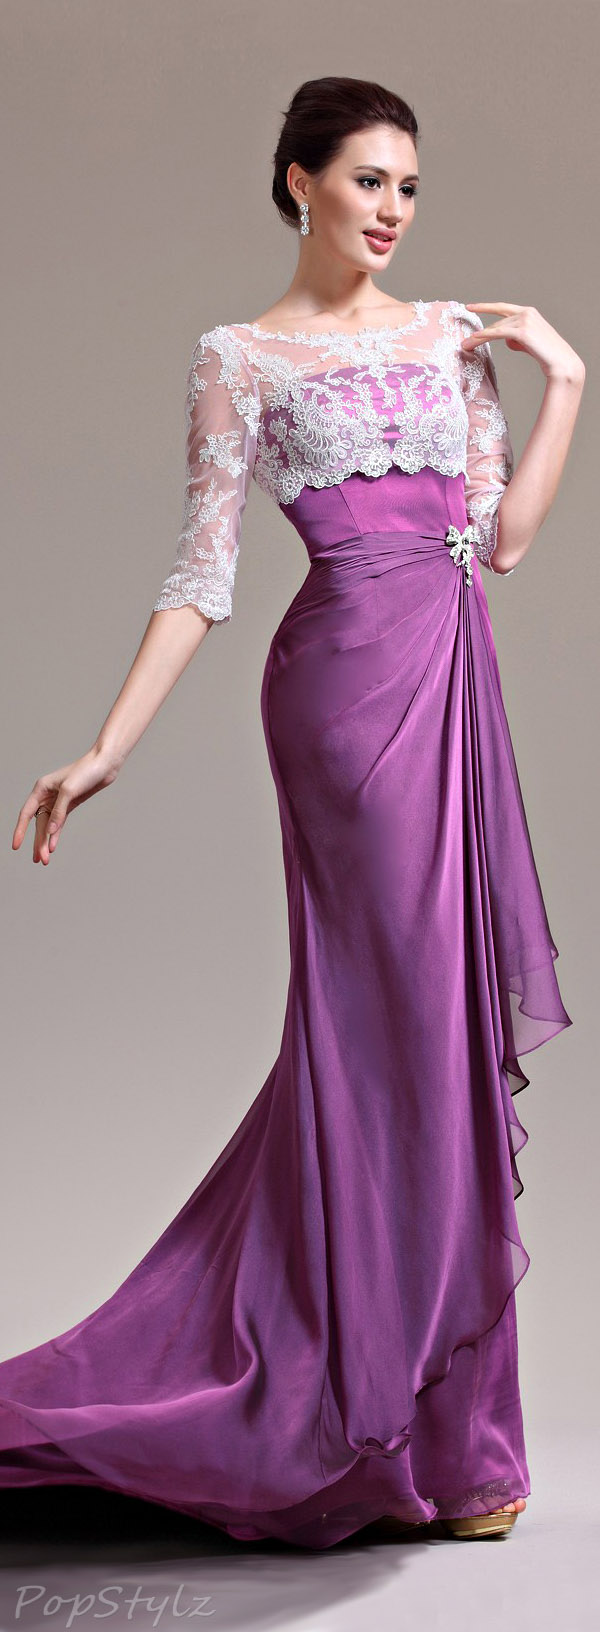 eDressit 26134512 Purple Gown